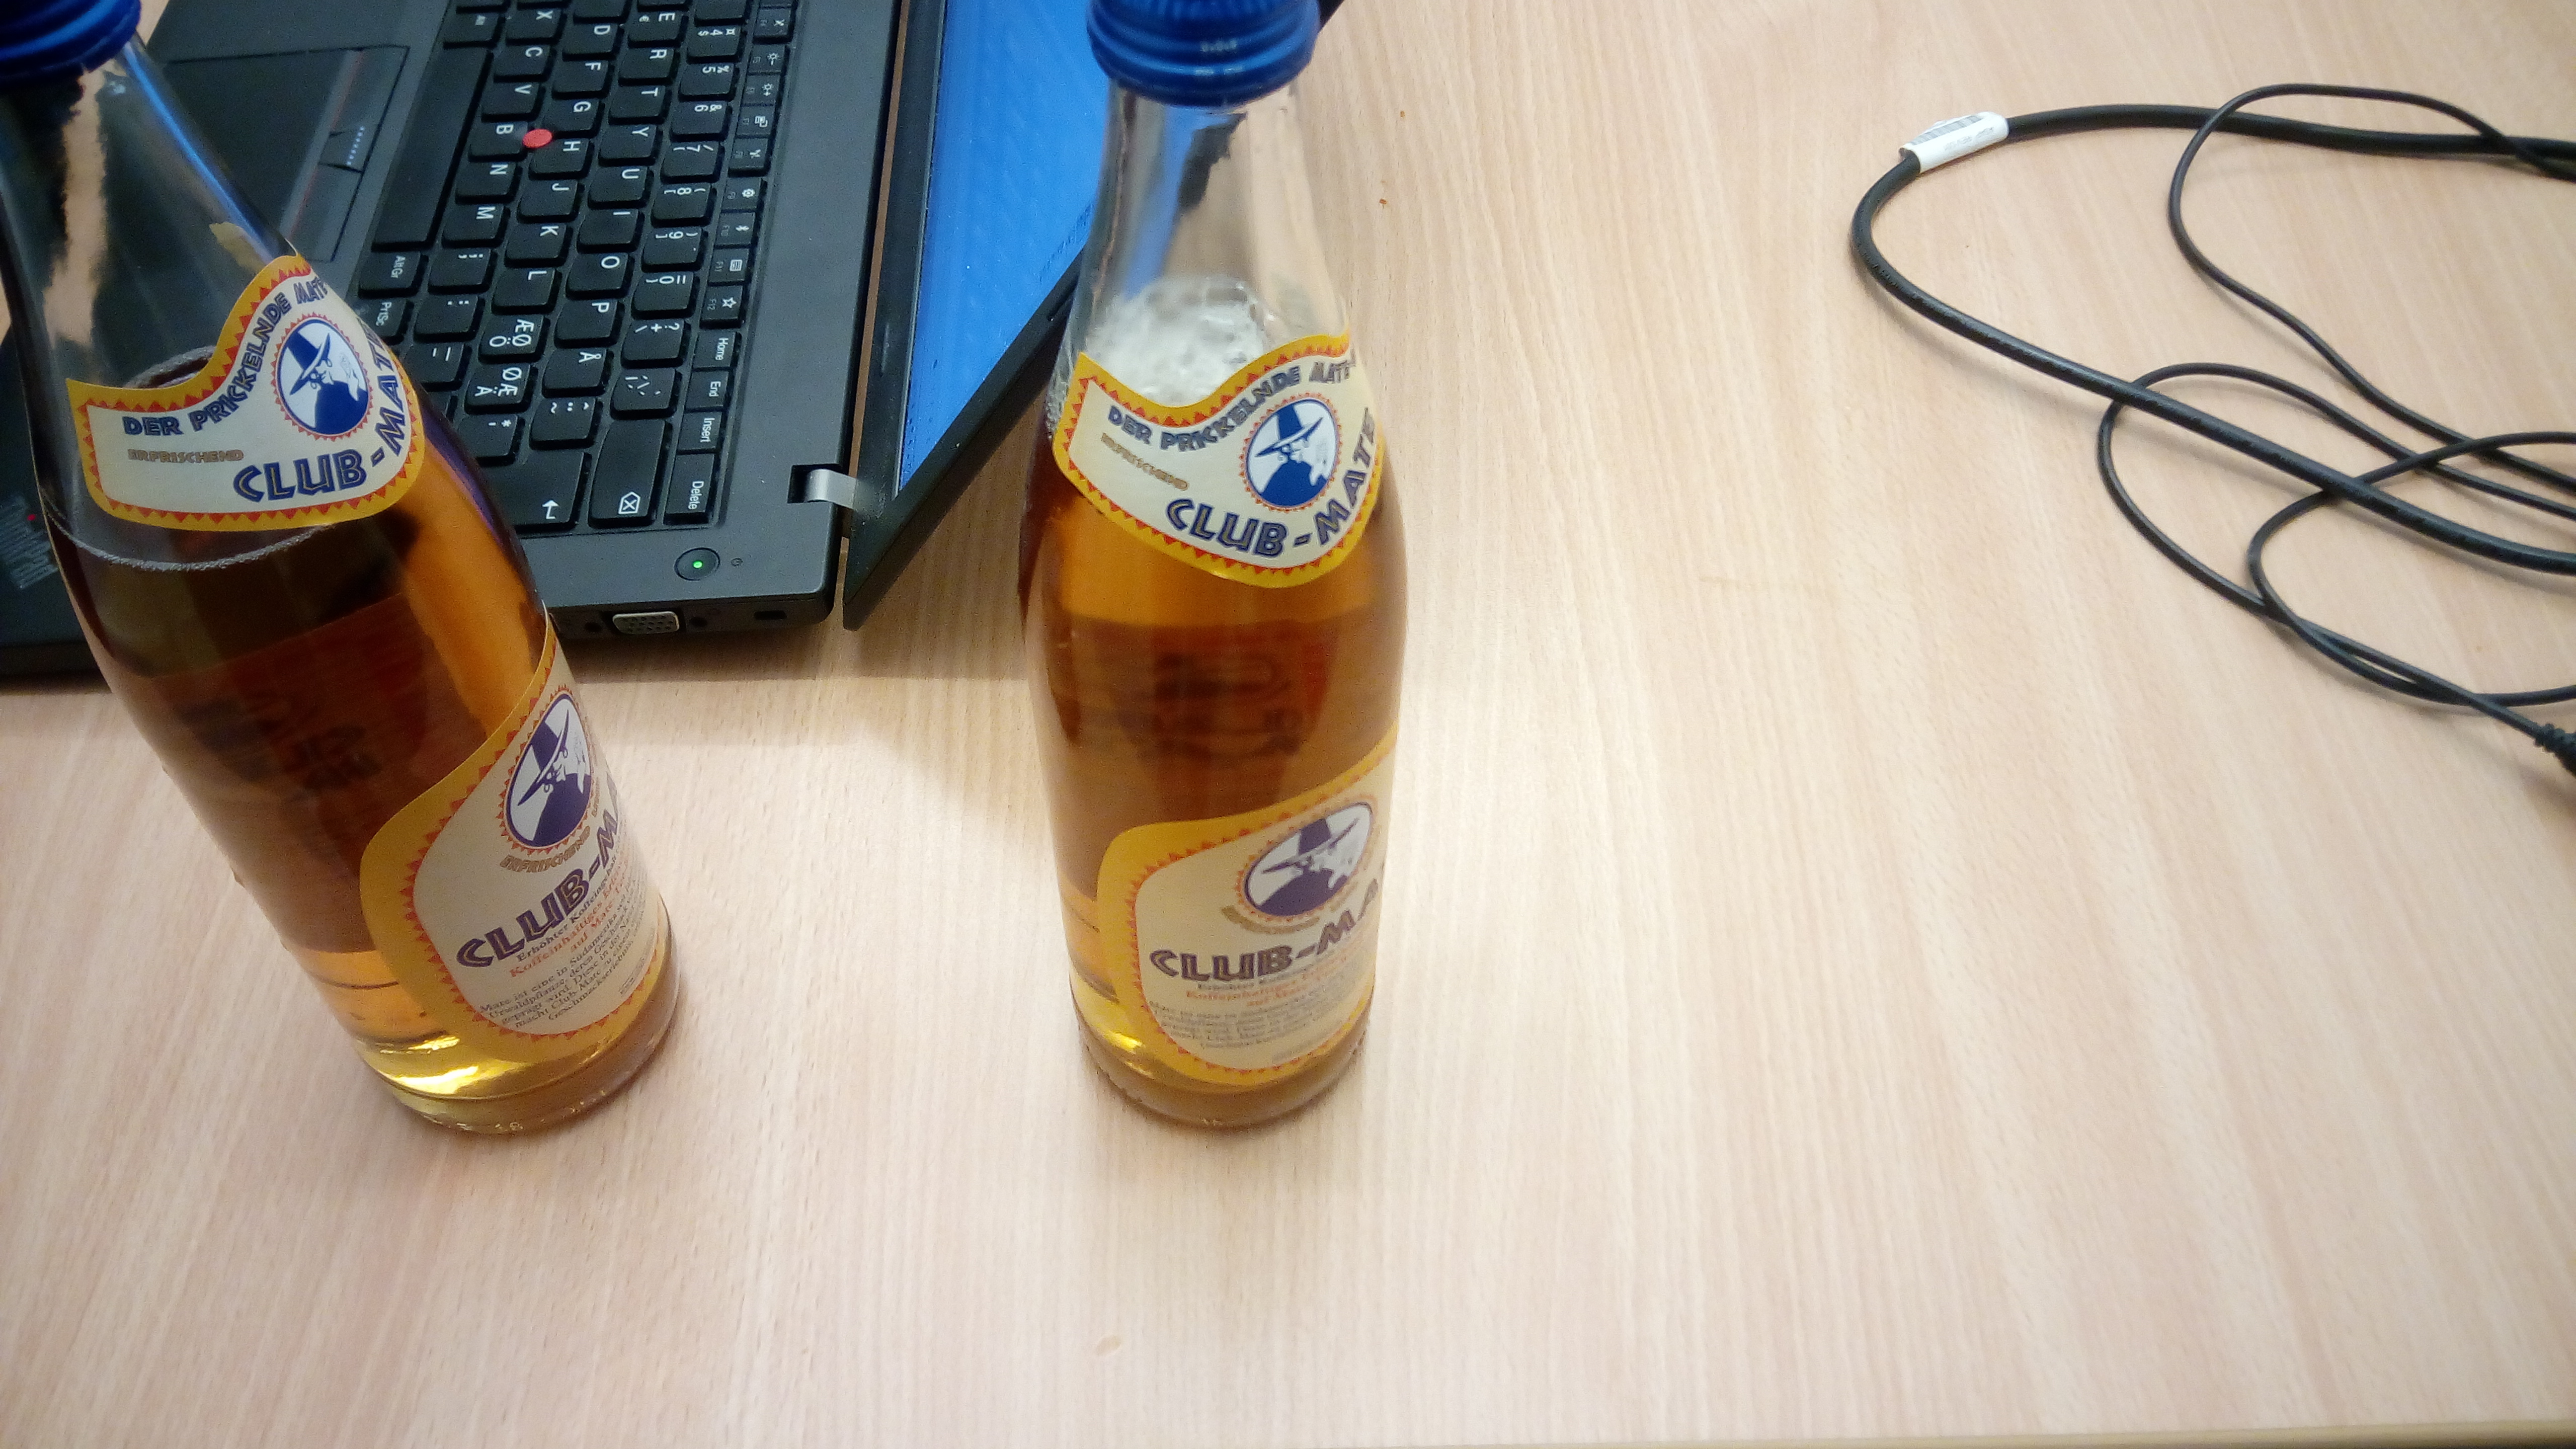 Club-Mate drink